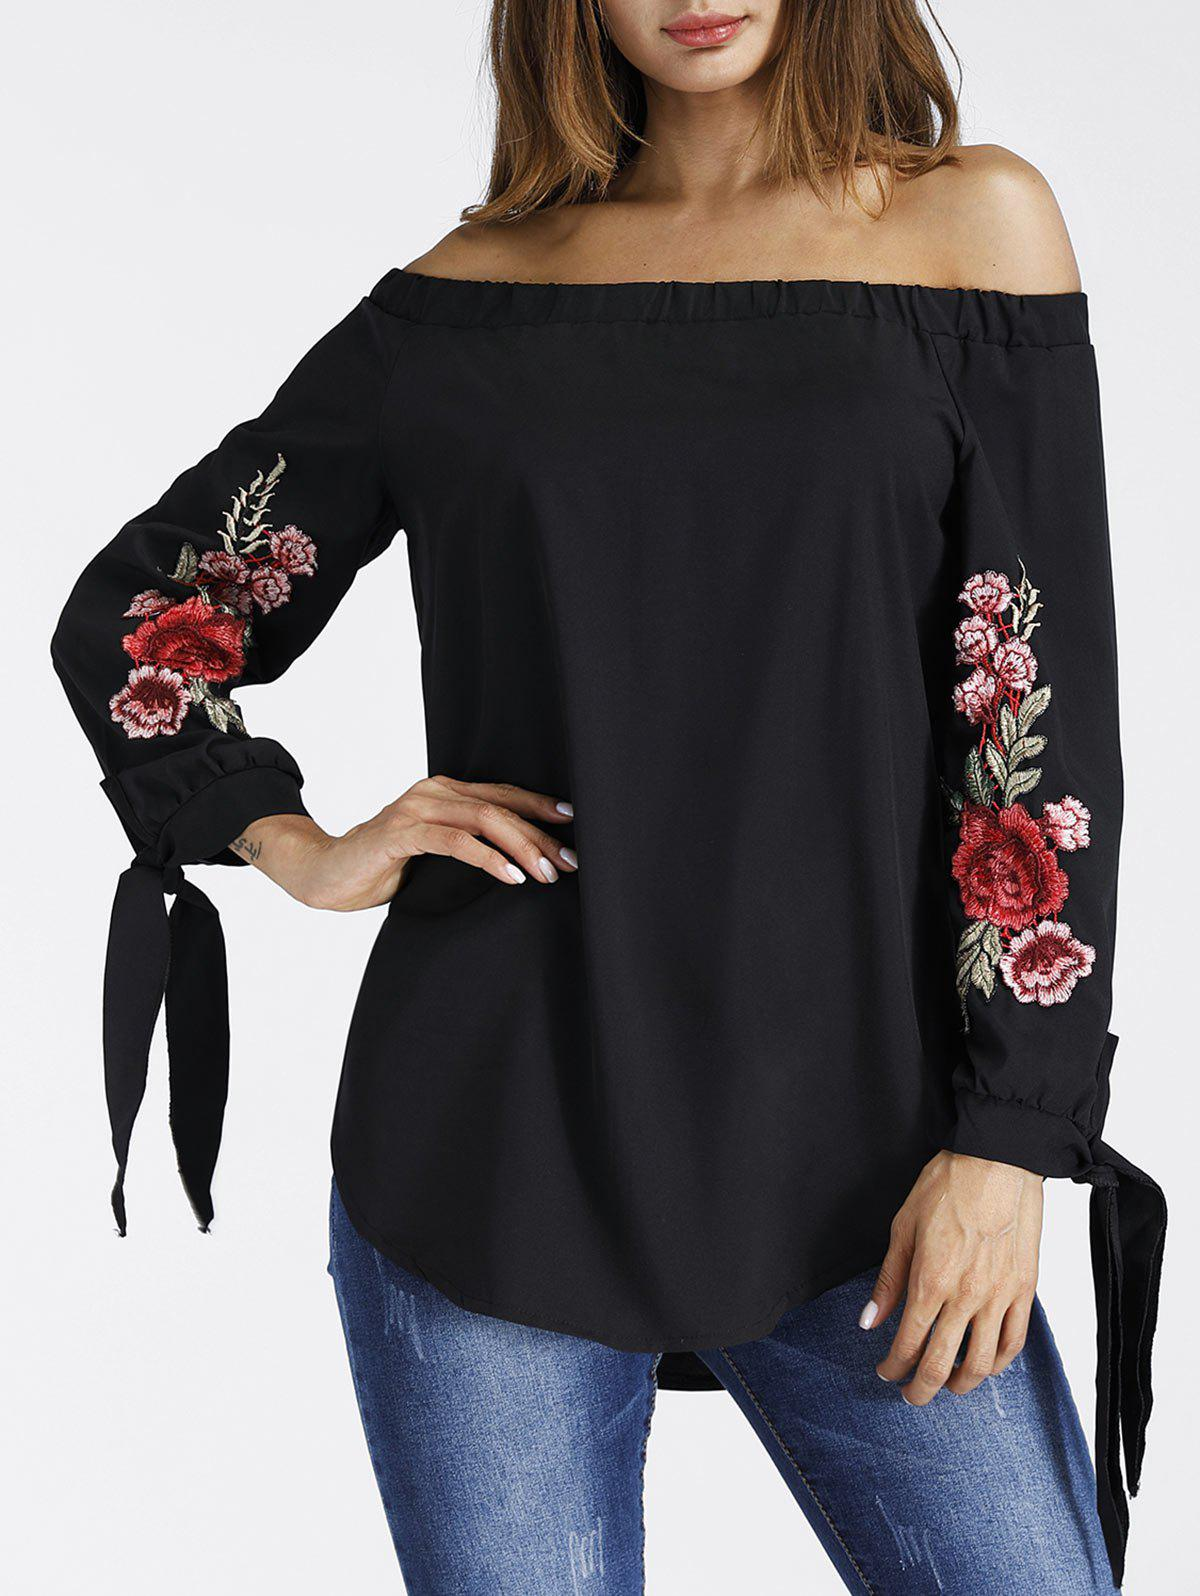 Off The Shoulder Embroidered Tunic Blouse 233463008